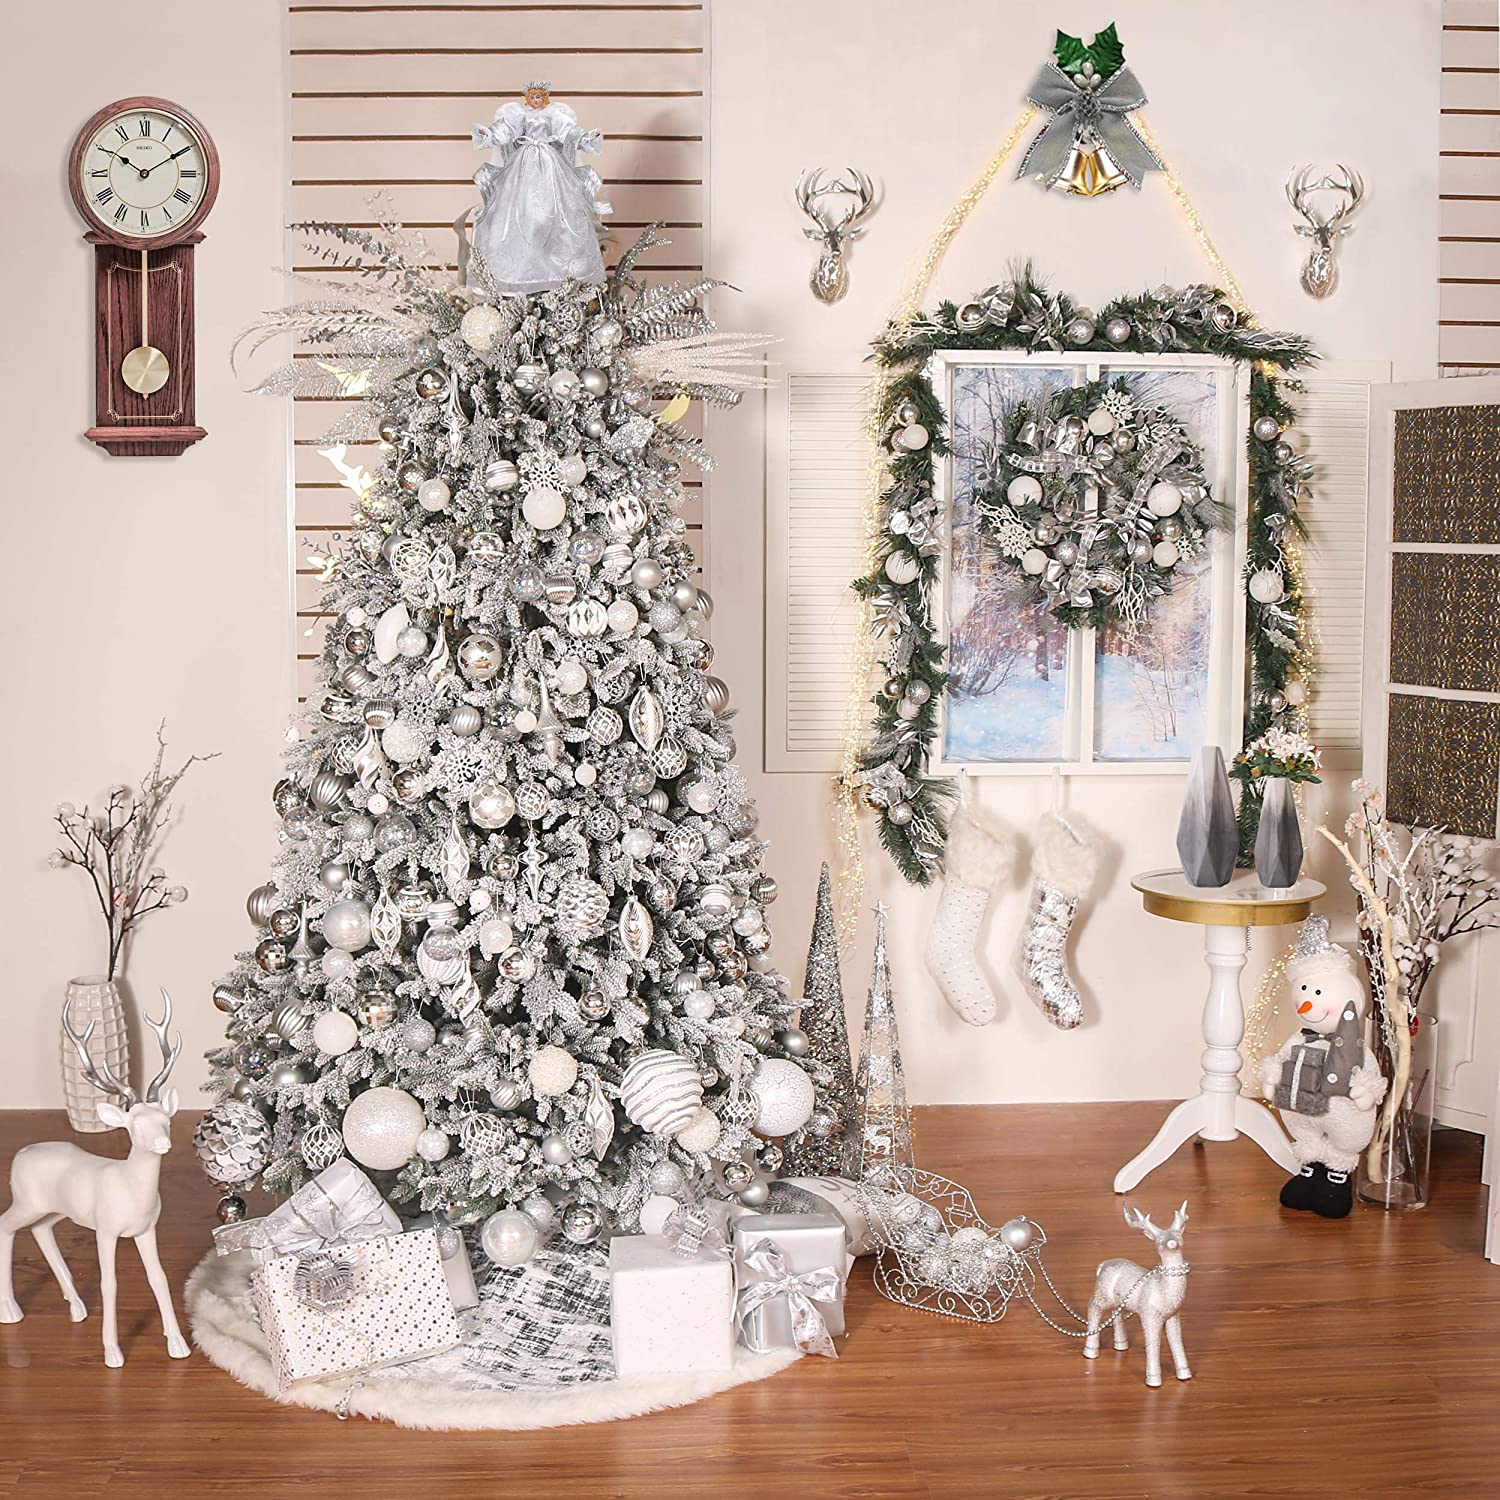 Valery Madelyn 16 Inch 10-Light Frozen Winter Silver White Ivory Christmas Tree Topper Angel Treetop Decorations Not Included Battery Operated